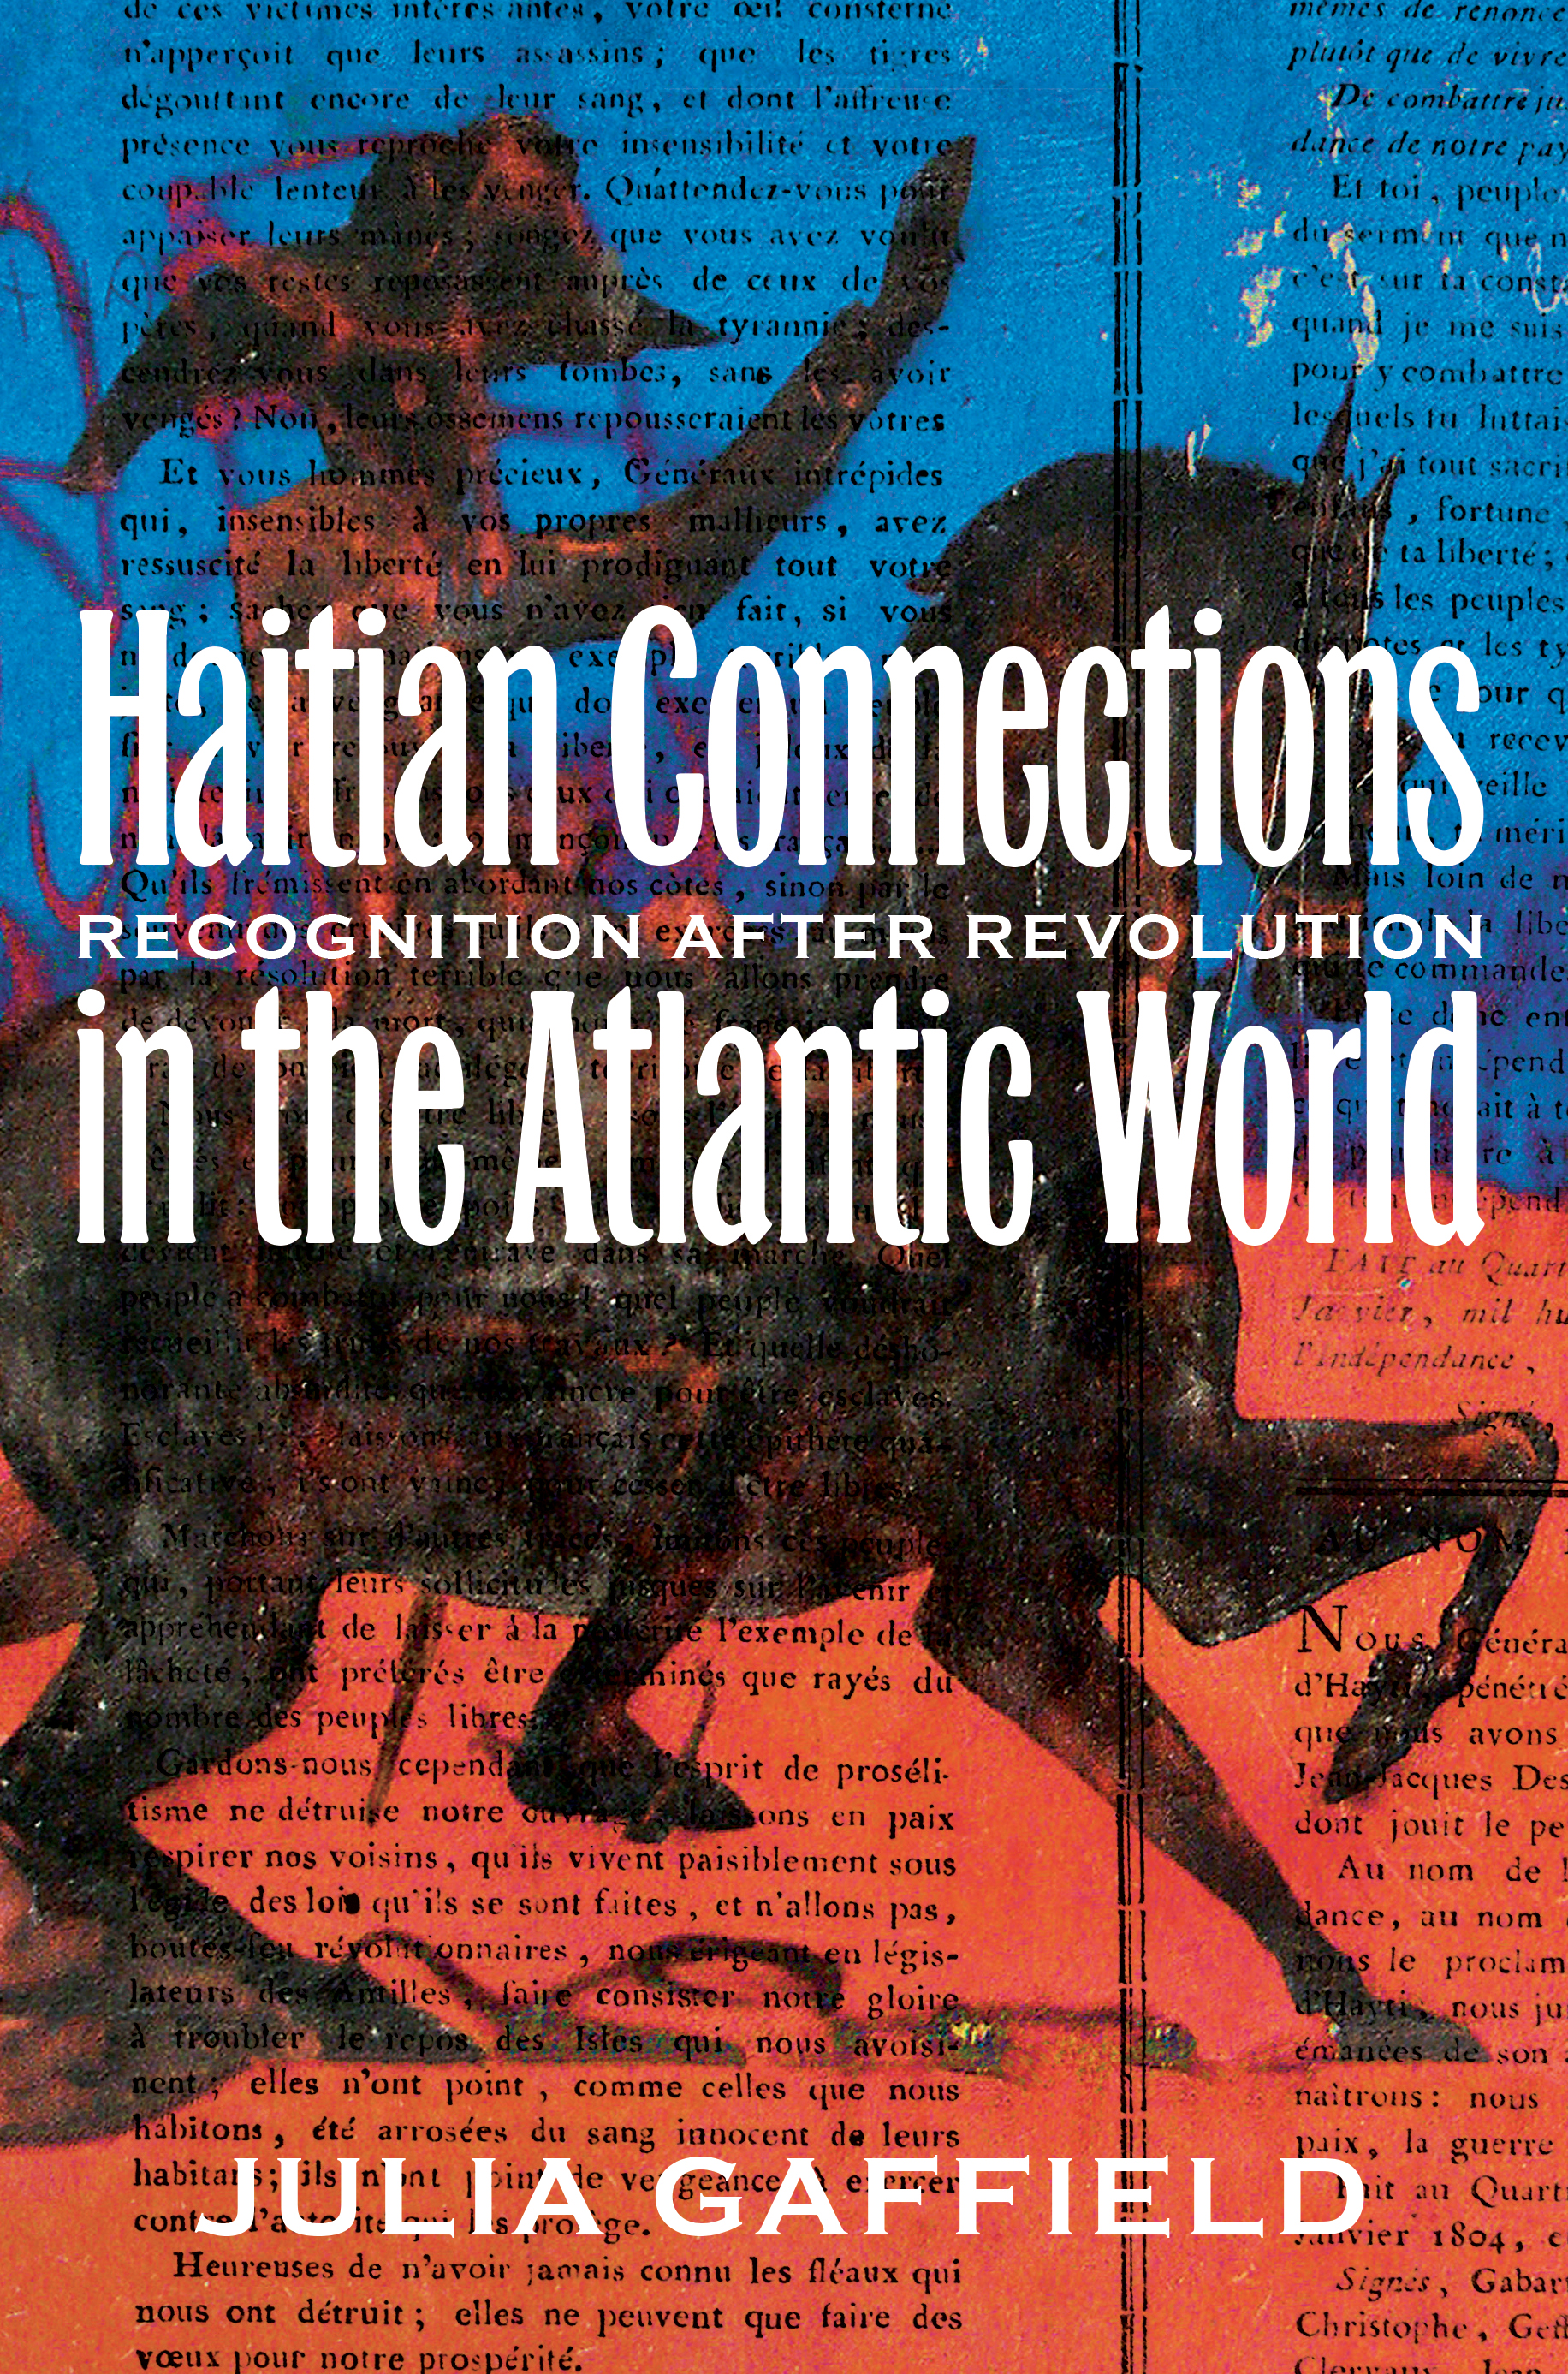 History Of Haiti Book